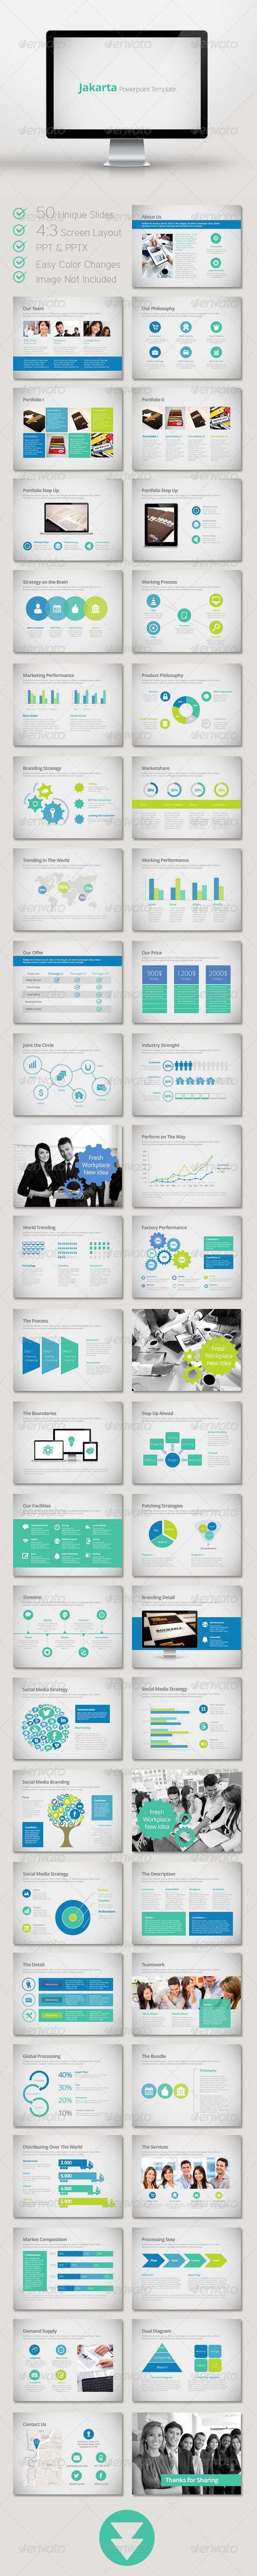 GraphicRiver Jakarta Powerpoint Template 6320506